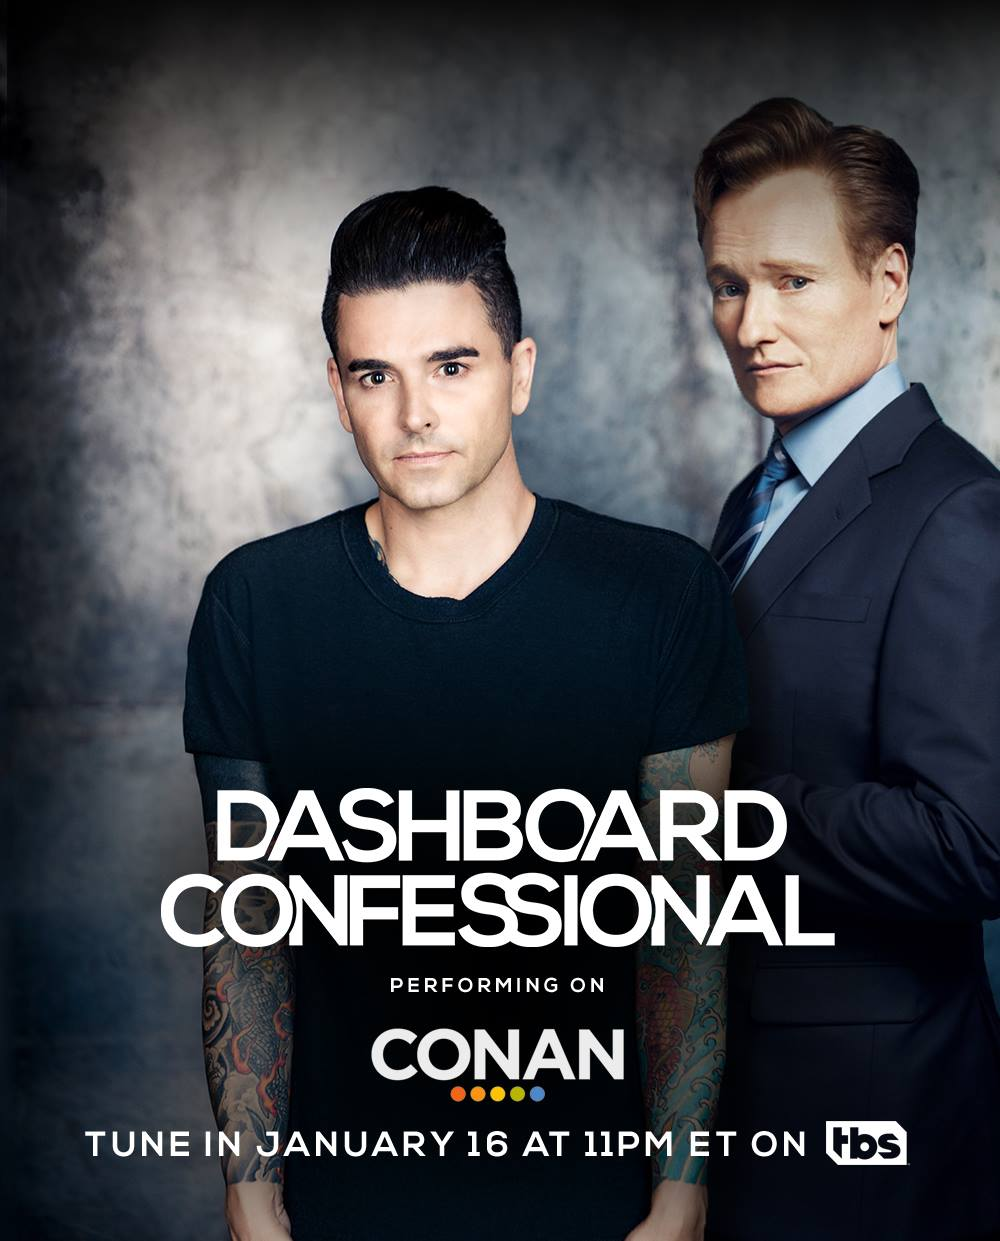 Don't forget to tune in and catch @dashboardmusic performing on @ConanOBrien tonight at 11pm ET on @TBSNetwork! https://t.co/NCjMXX1McM